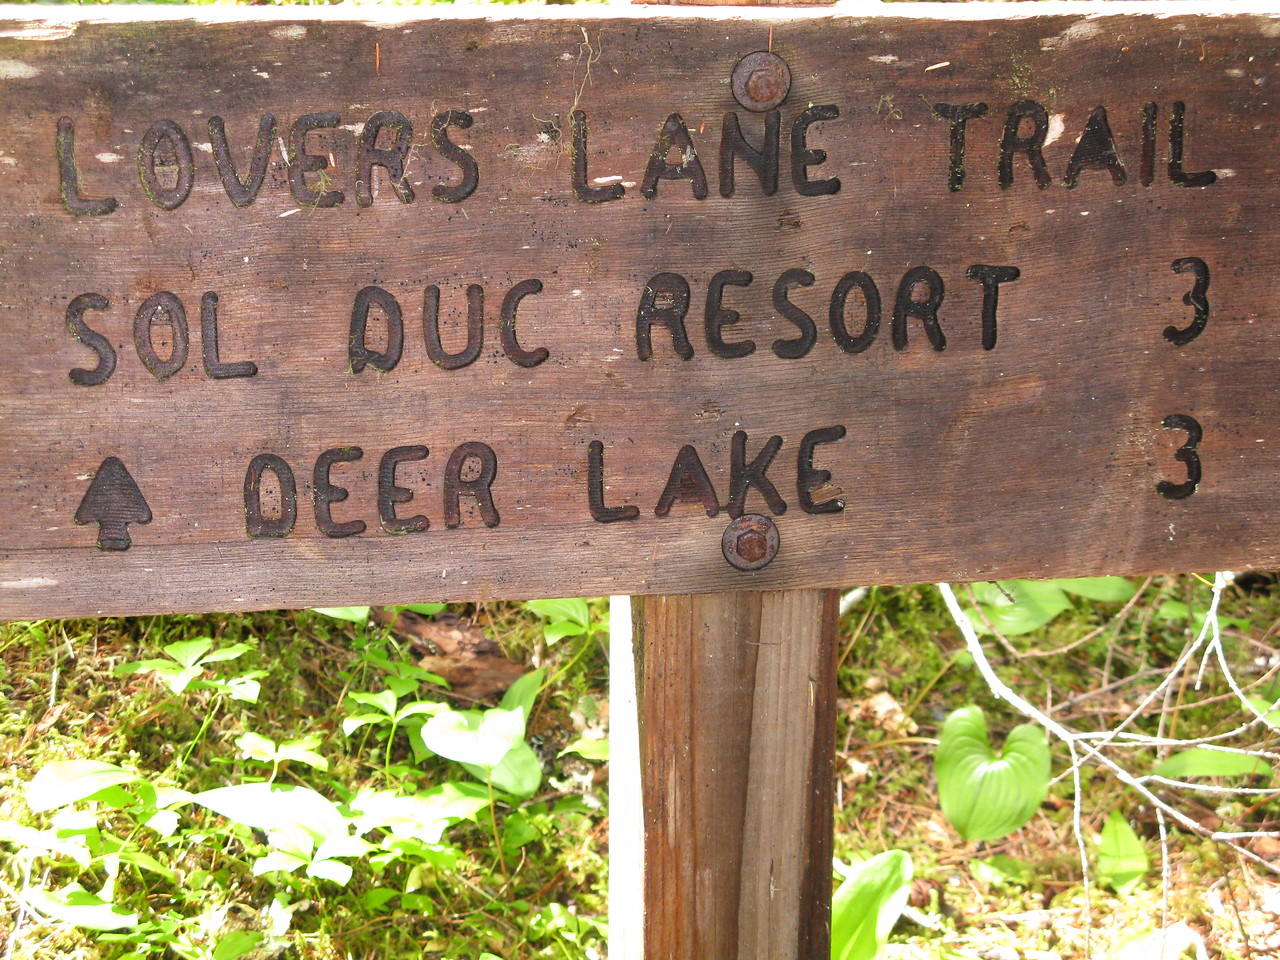 We took the trail on the west side of the river, named the Lovers Lane Trail, back to Sol Duc Hot Springs Resort.